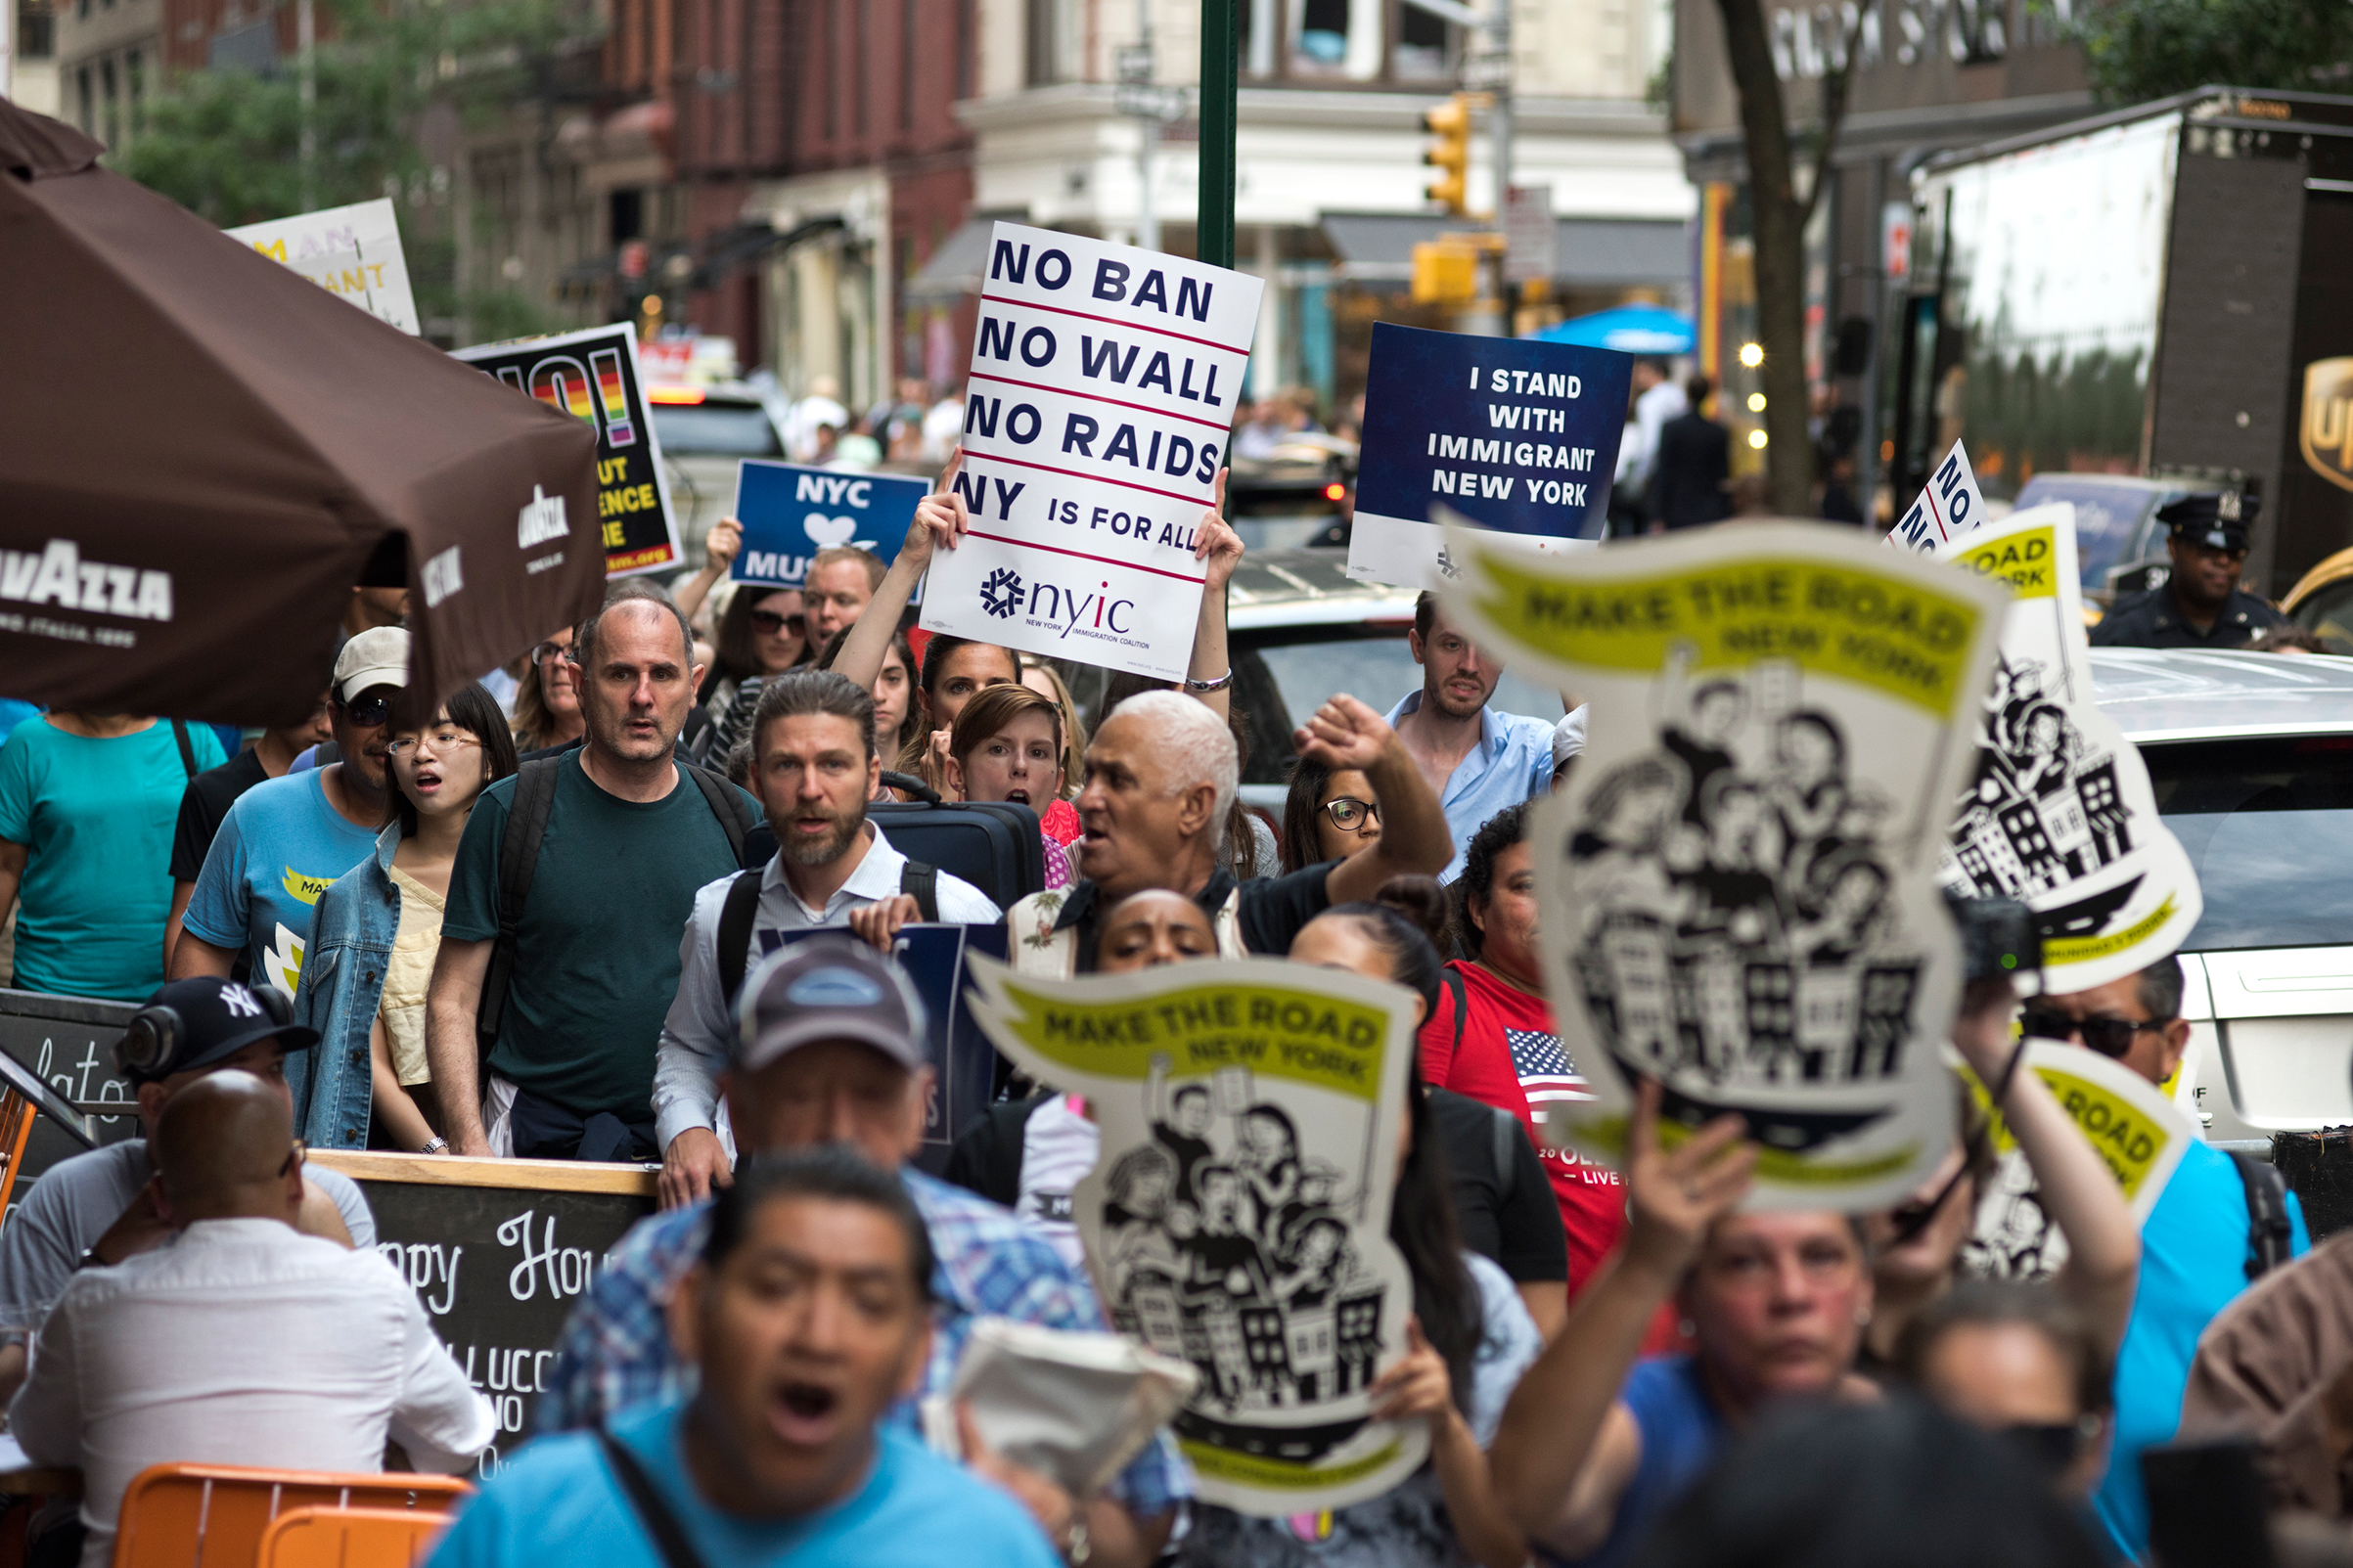 Immigrants join activists for an evening protest in Manhattan hours before a revised version of President Donald Trump's travel ban that was approved by the Supreme Court is to take effect on June 29, 2017 in New York City.